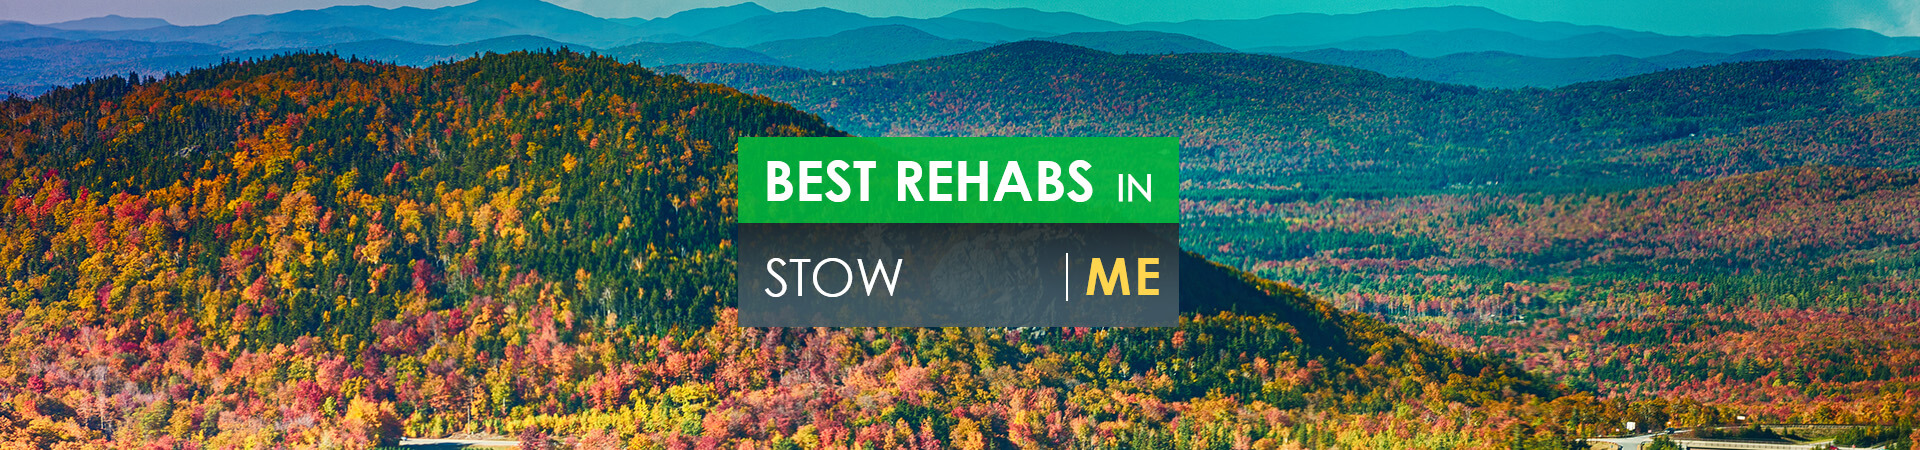 Best rehabs in Stow, ME